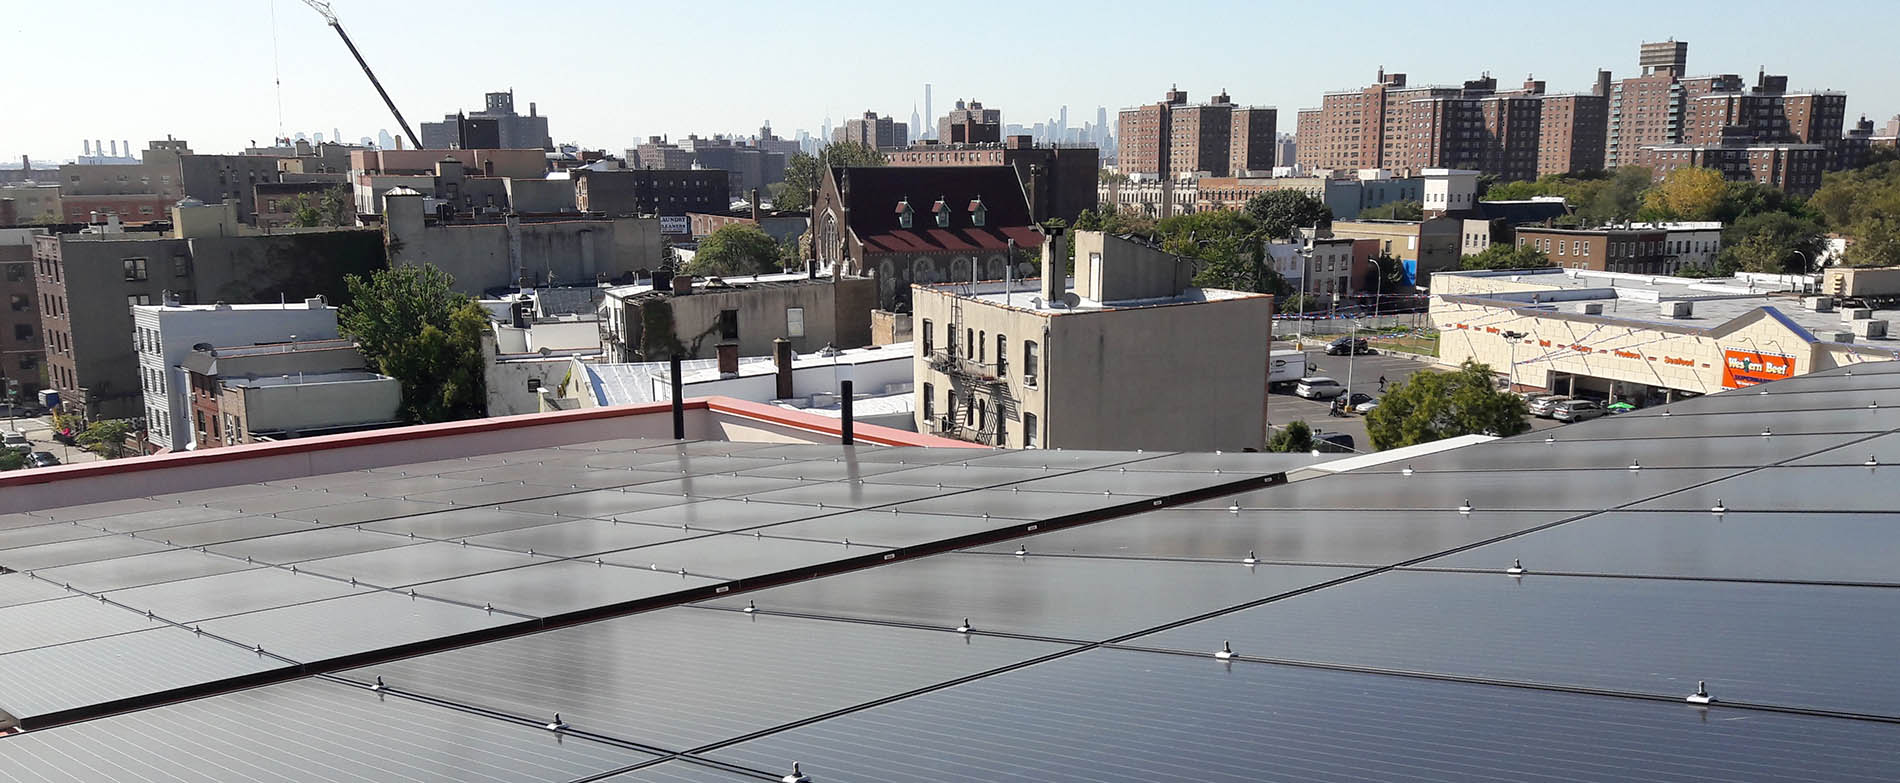 Affordable Housing + Community Solar: Now Is the Time